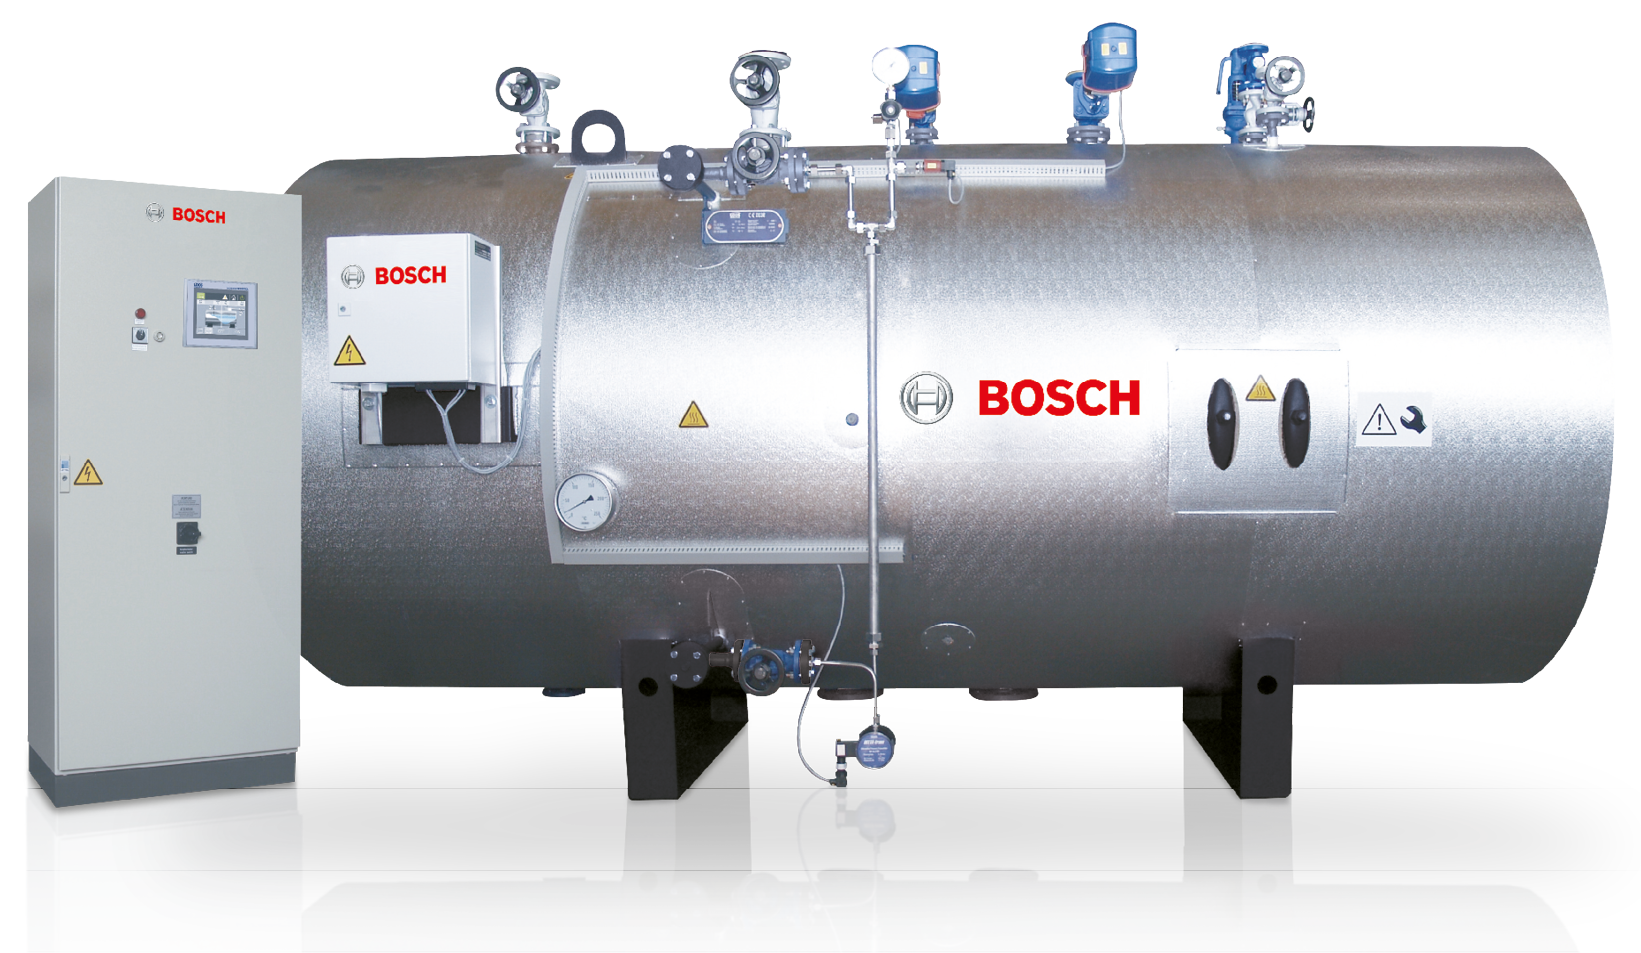 High-pressure condensate tank, including equipment and control